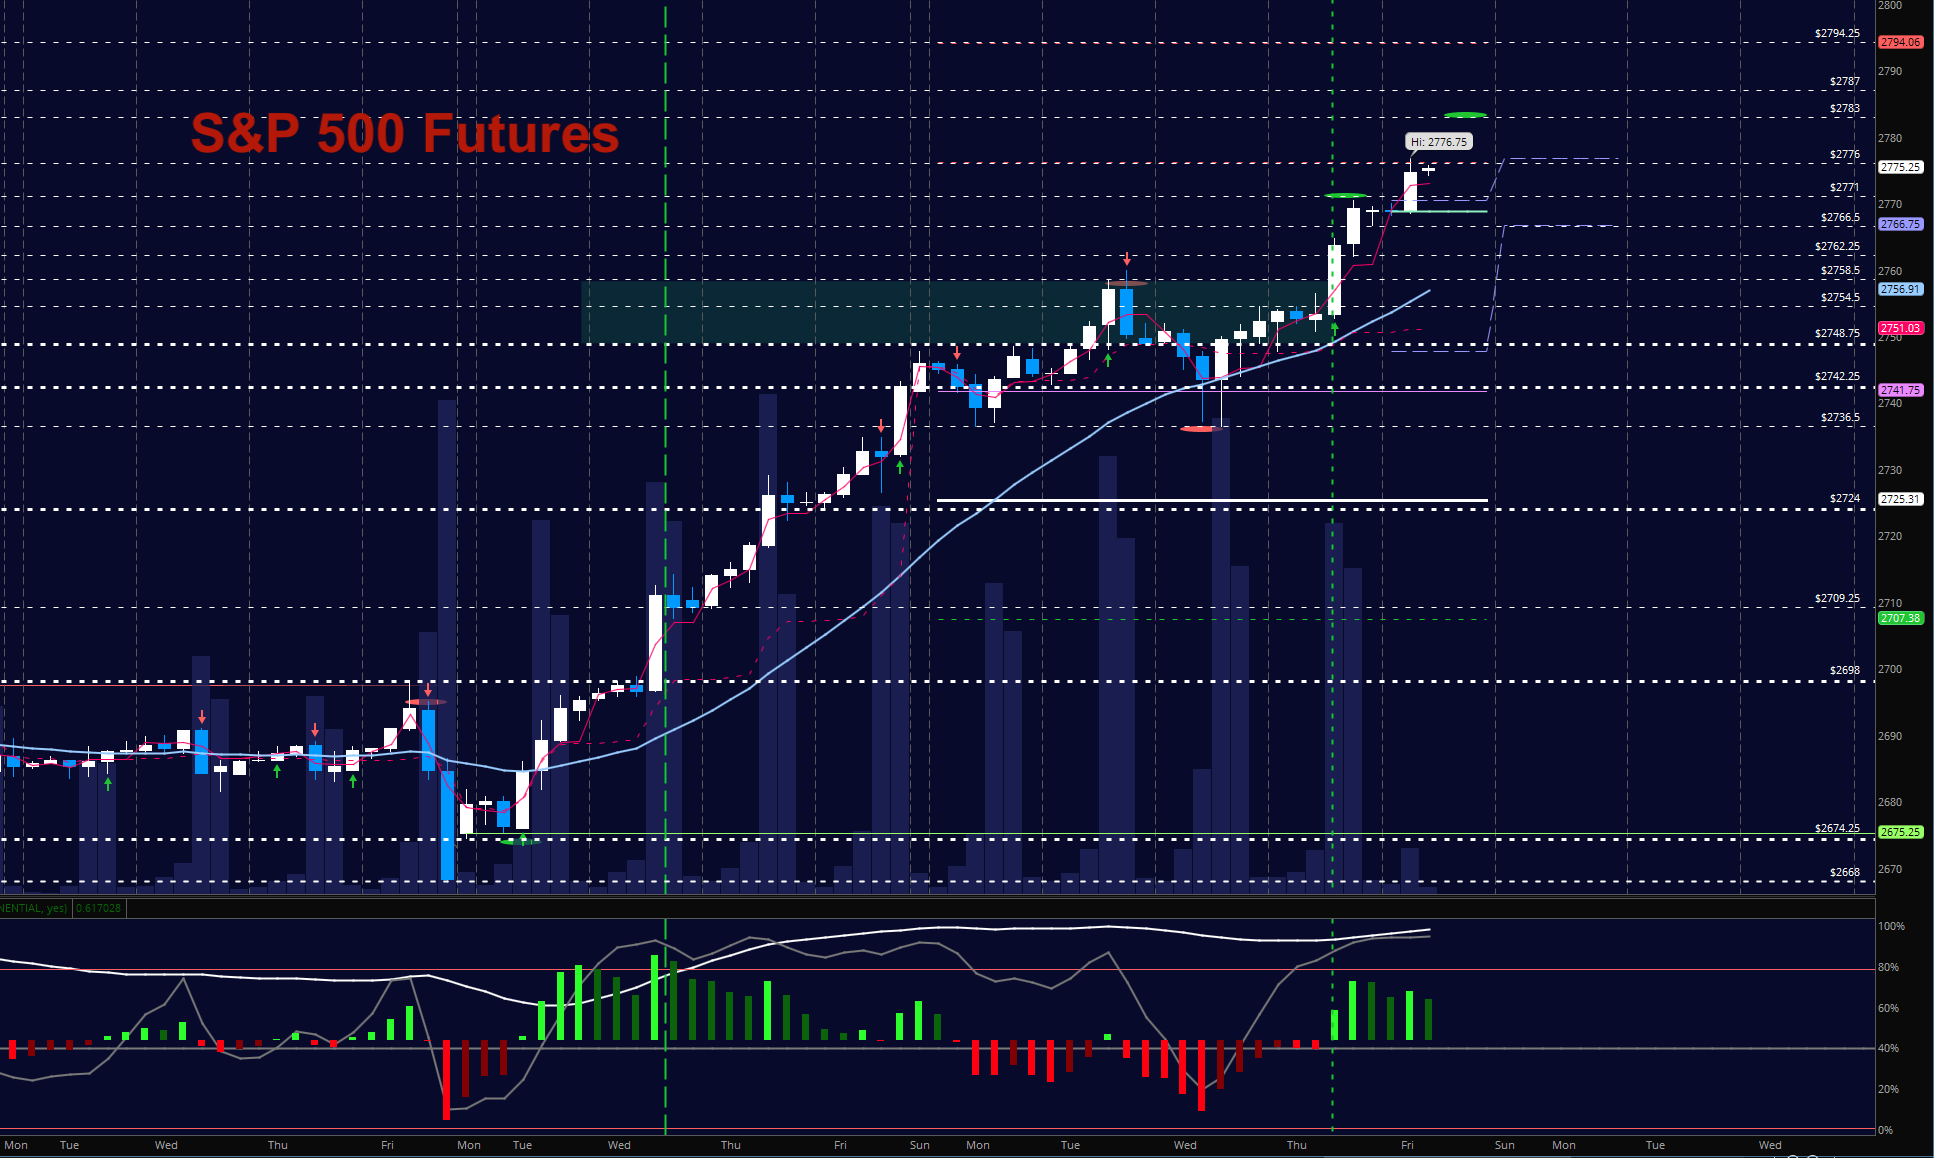 s&p 500 futures january 12 trading chart new highs news